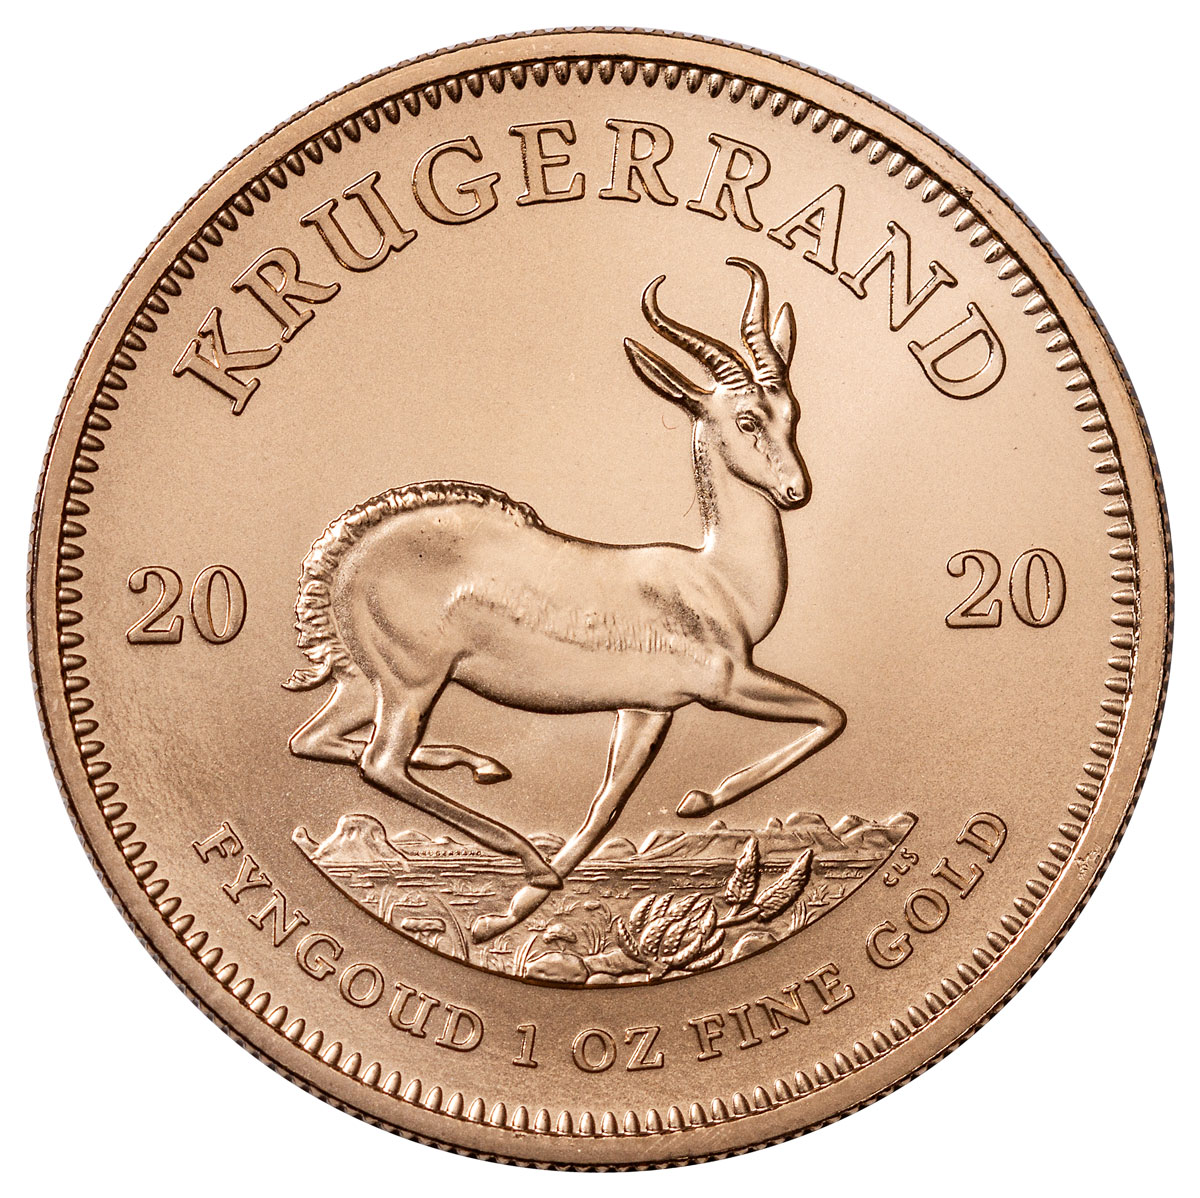 2020 South Africa 1 oz Gold Krugerrand R1 BU Coin GEM BU